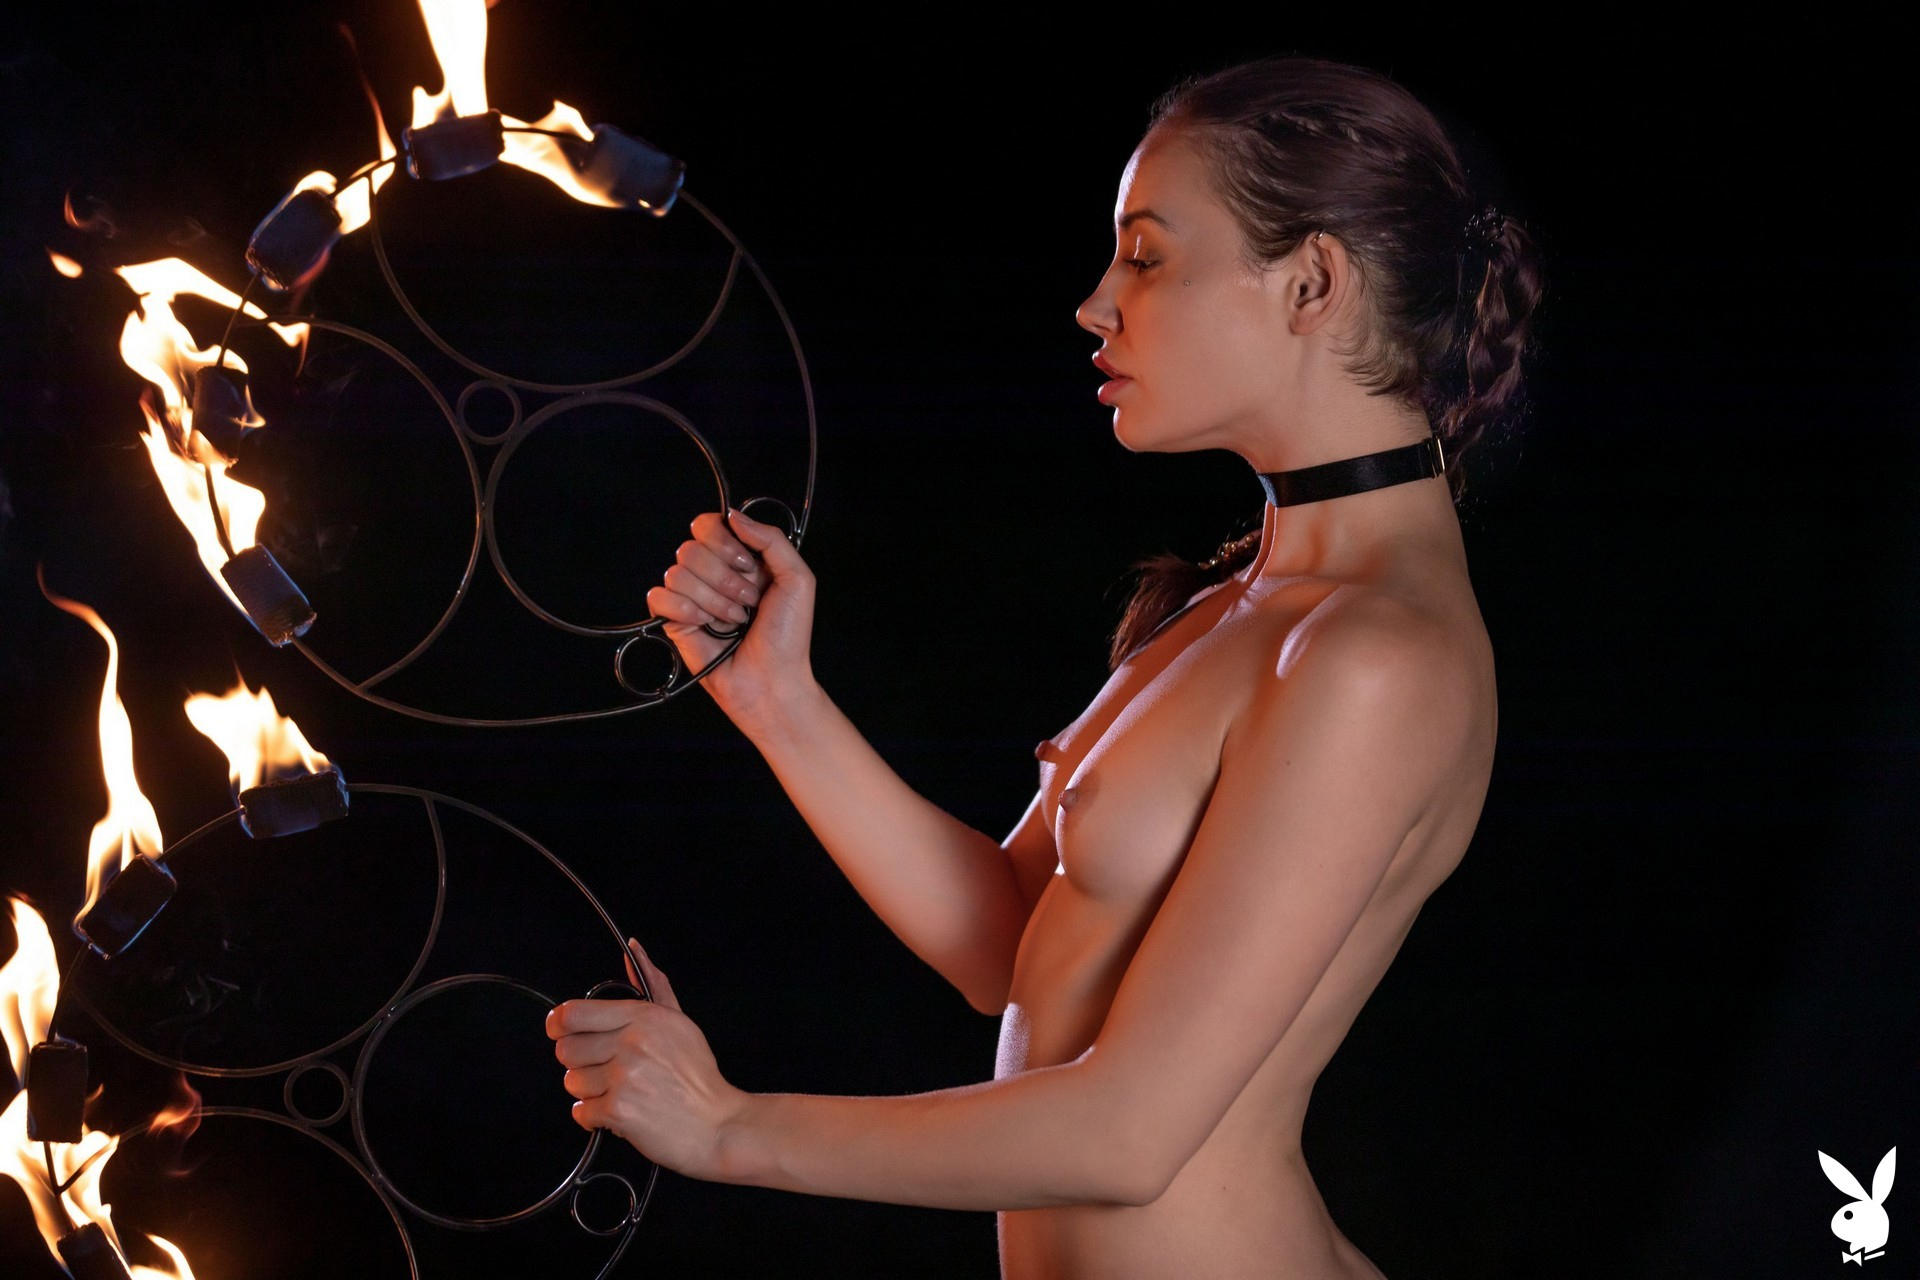 Elilith Noir In Playing With Fire Playboy Plus (19)